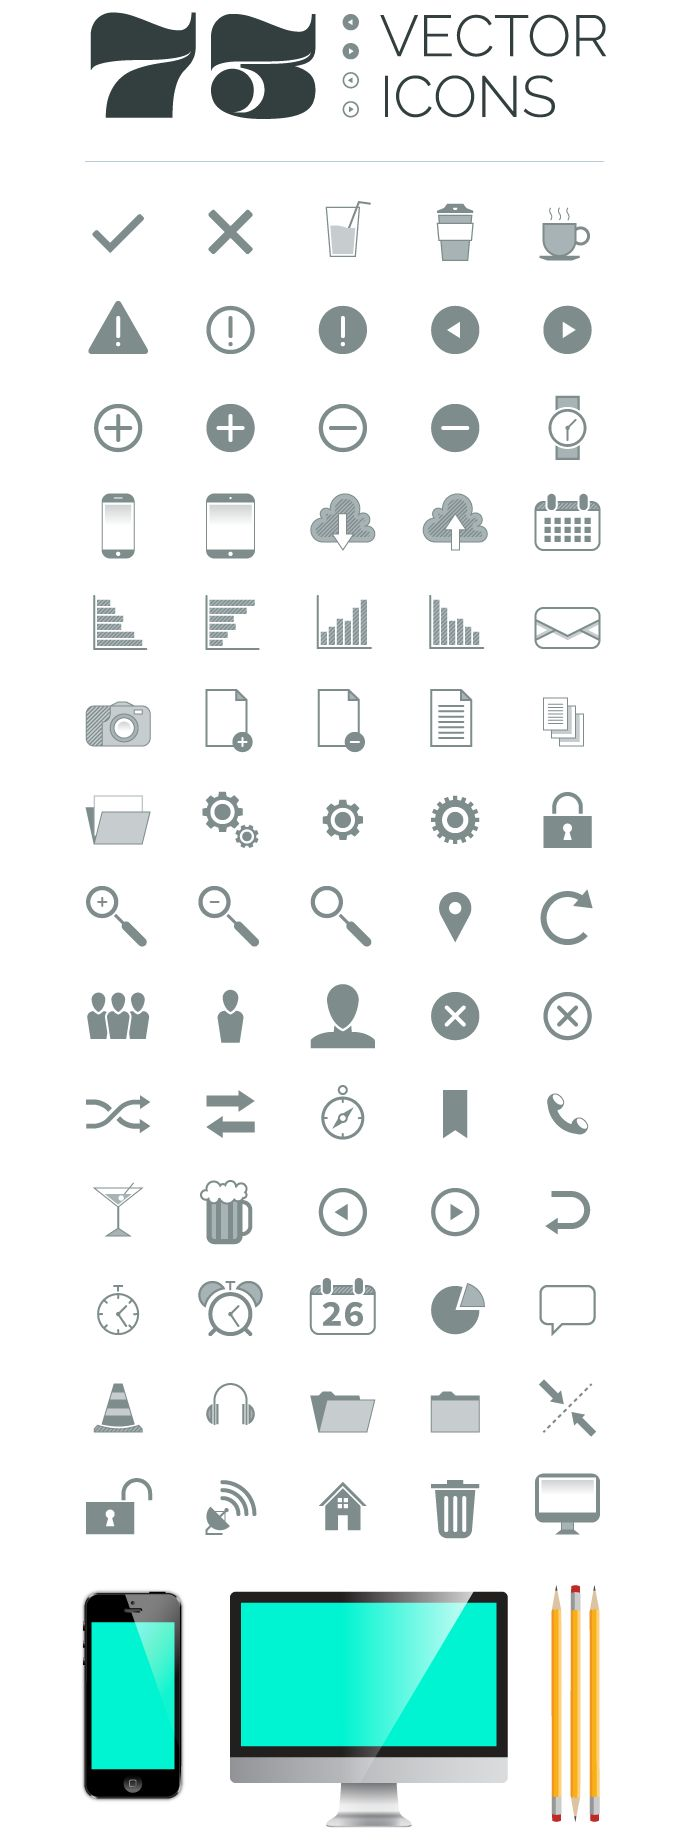 44 best Icons and Dingbats images on Pinterest | Pictogram, Icon ...